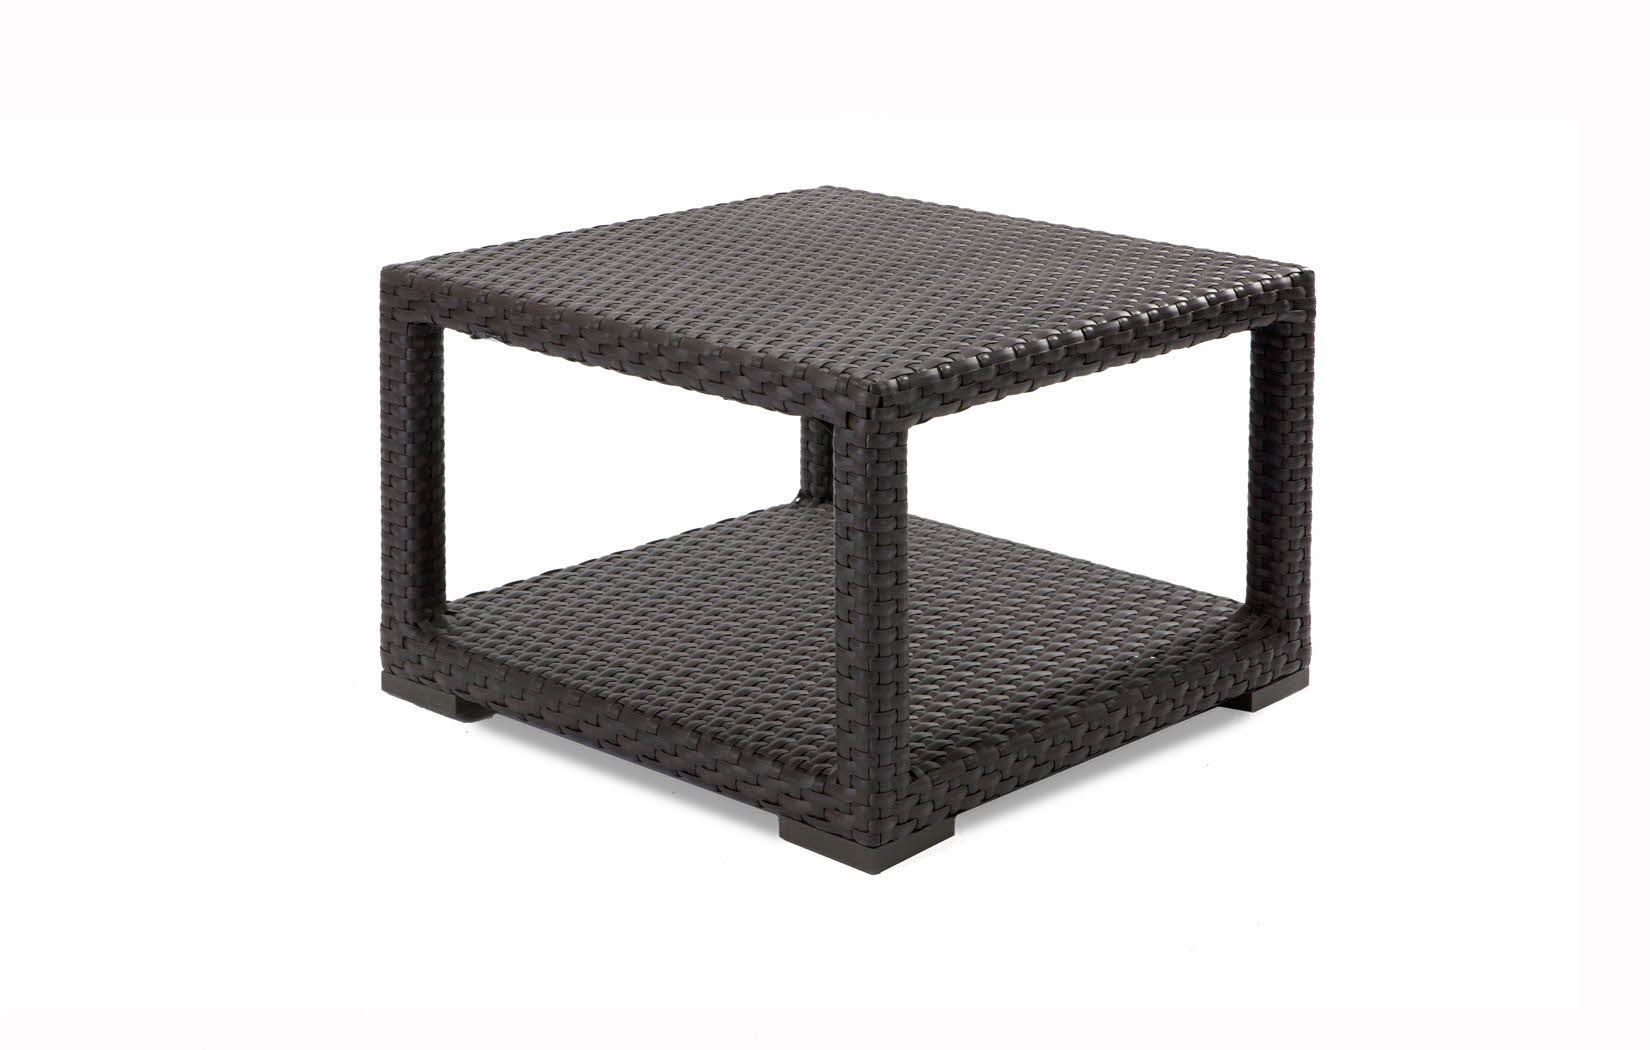 outdoor side tables commercial furniture texacraft main accent table square end wine rack with glass holder black steel dining chairs elegant tablecloths small occasional ikea